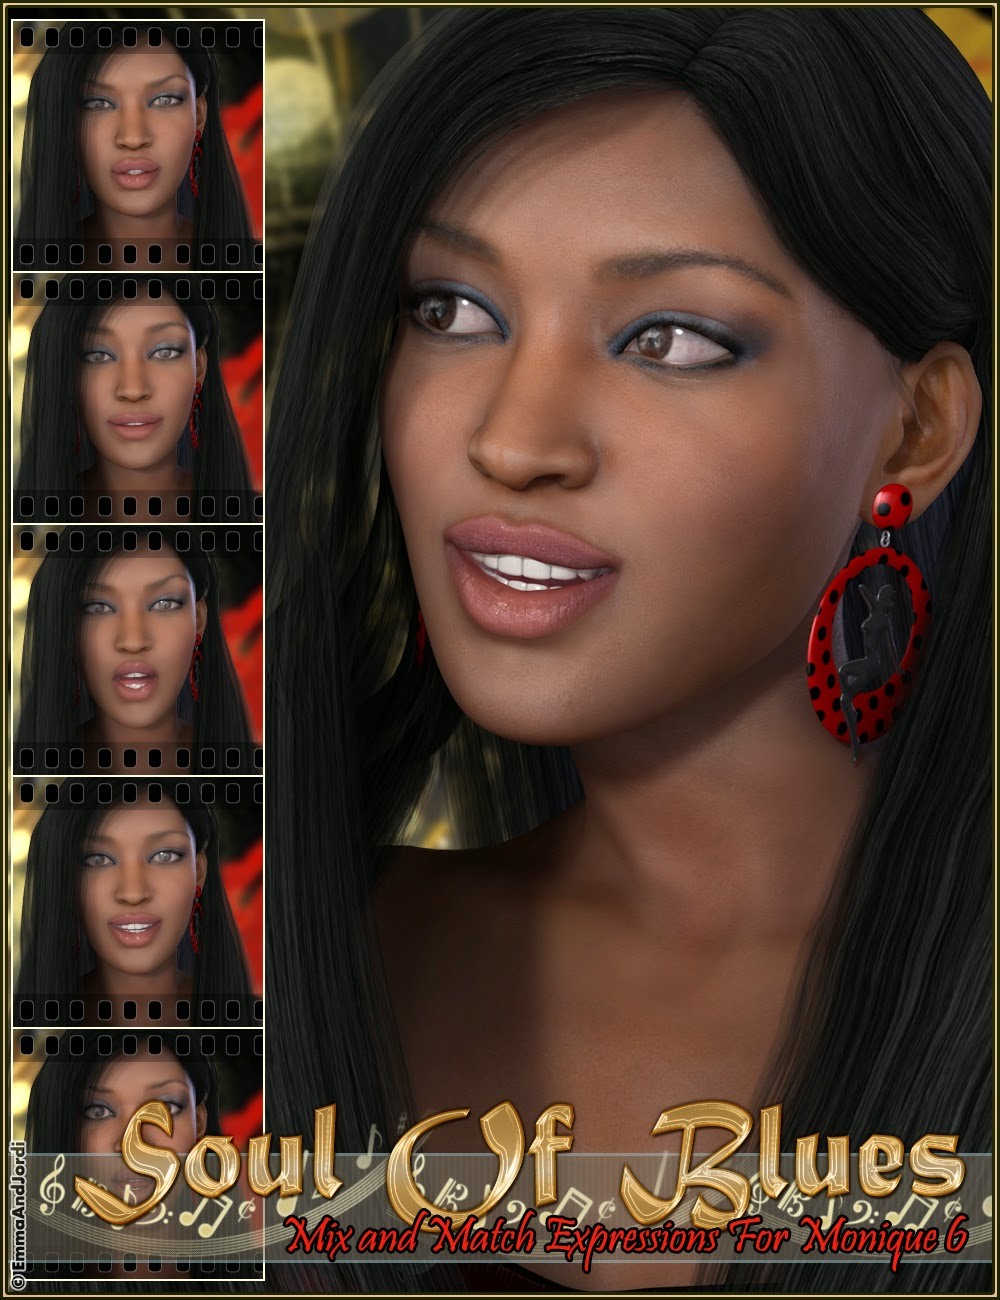 http://www.daz3d.com/soul-of-blues-mix-and-match-expressions-for-monique-6